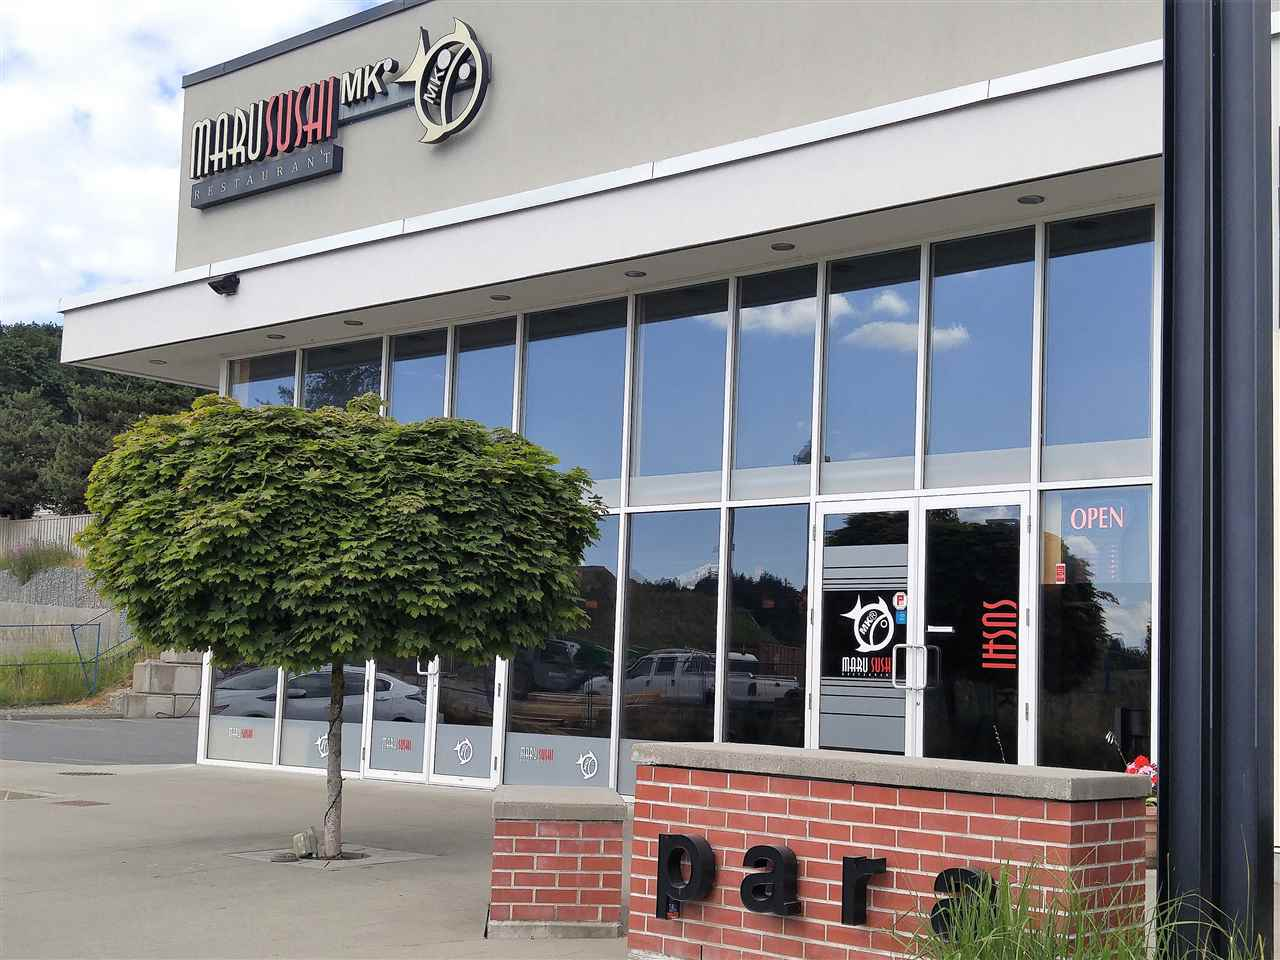 Nice Restaurant in Parallel Market Place Shopping Plaza in Whatcom Area. Liquor license, 70 seats, 2200 sq.ft, lease 6 years plus 10 years option left. All equipment are fairly new (3 years old). Can be converted to any other types of restaurant if desired.